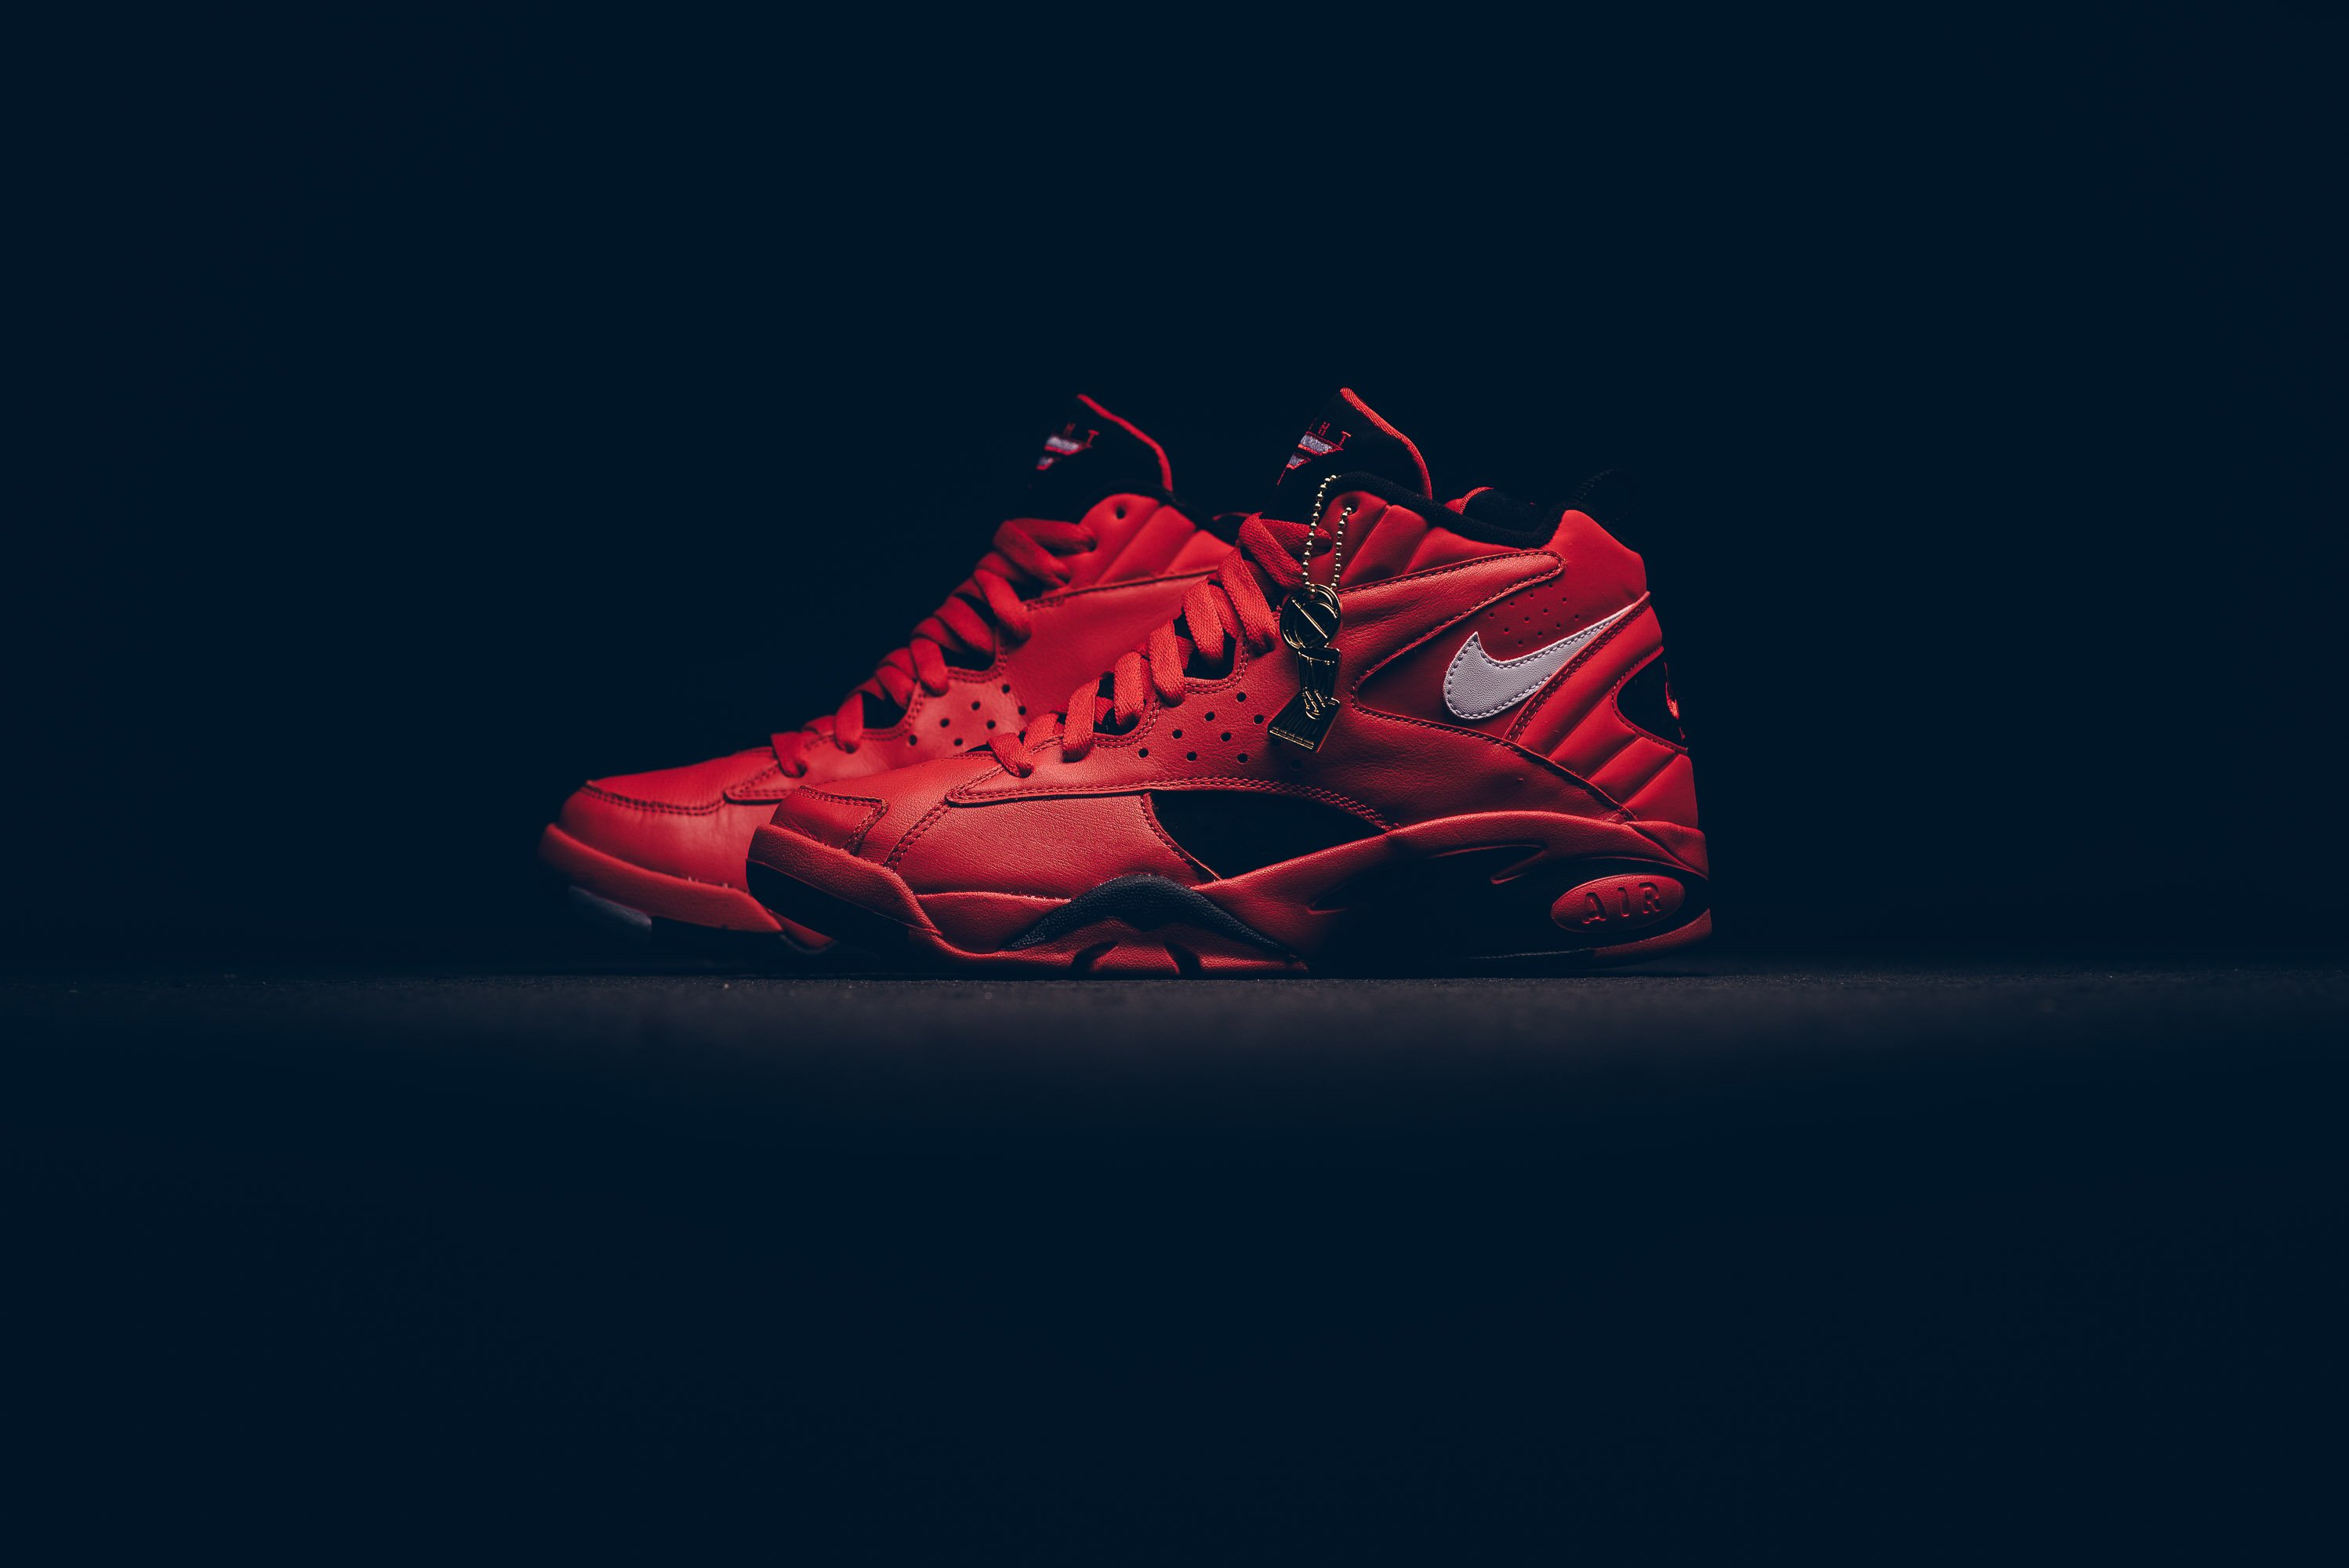 nike_air_maestro_ii_qs_university_red-white-black_aj9281-600_sneaker_politics_1